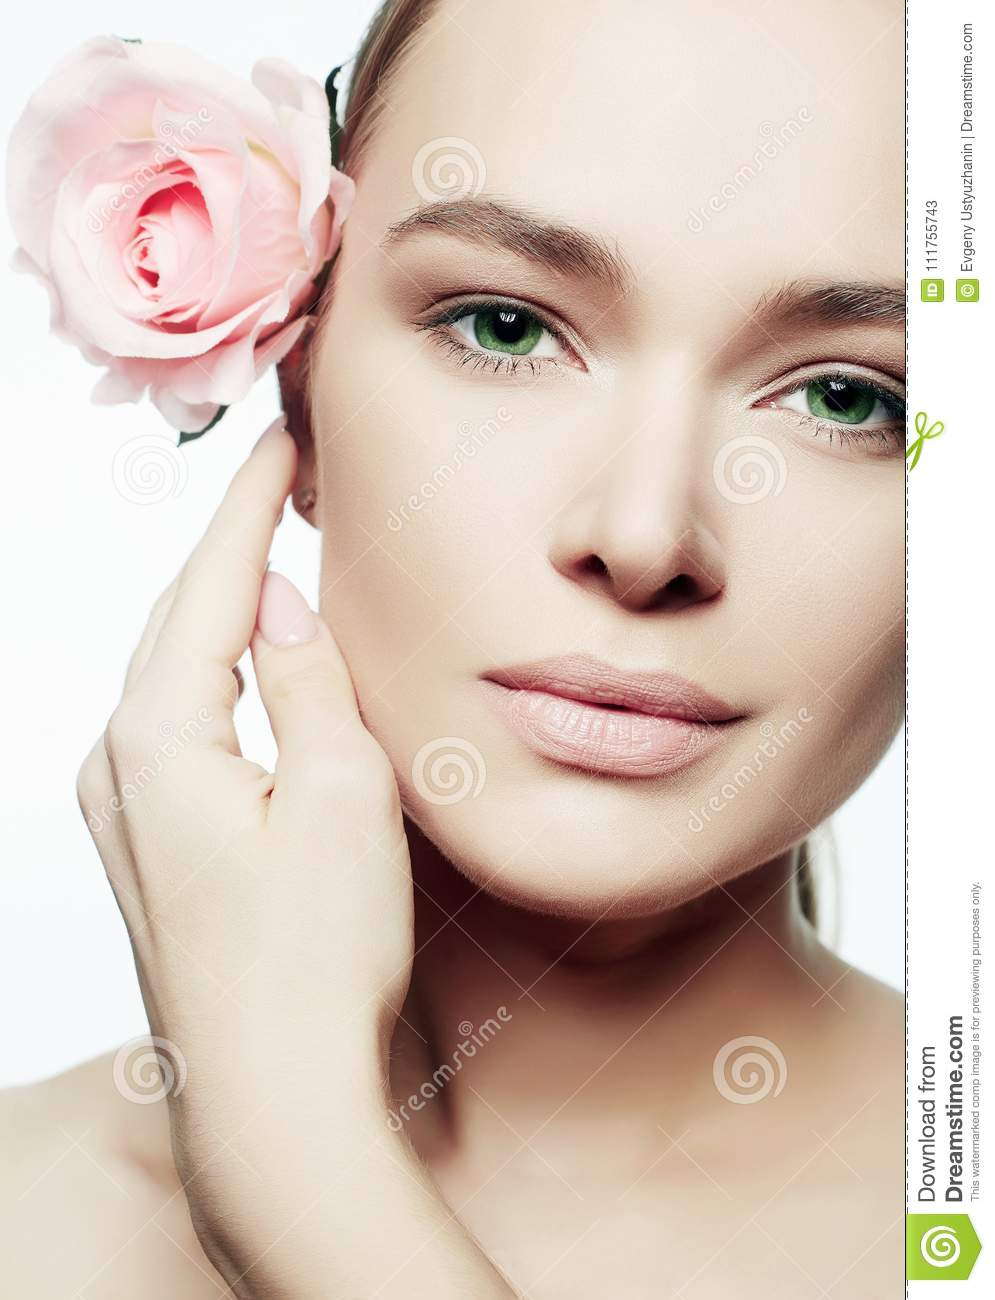 Beauty portrait of girl with rose flower stock image image of download beauty portrait of girl with rose flower stock image image of cheerful foundation izmirmasajfo